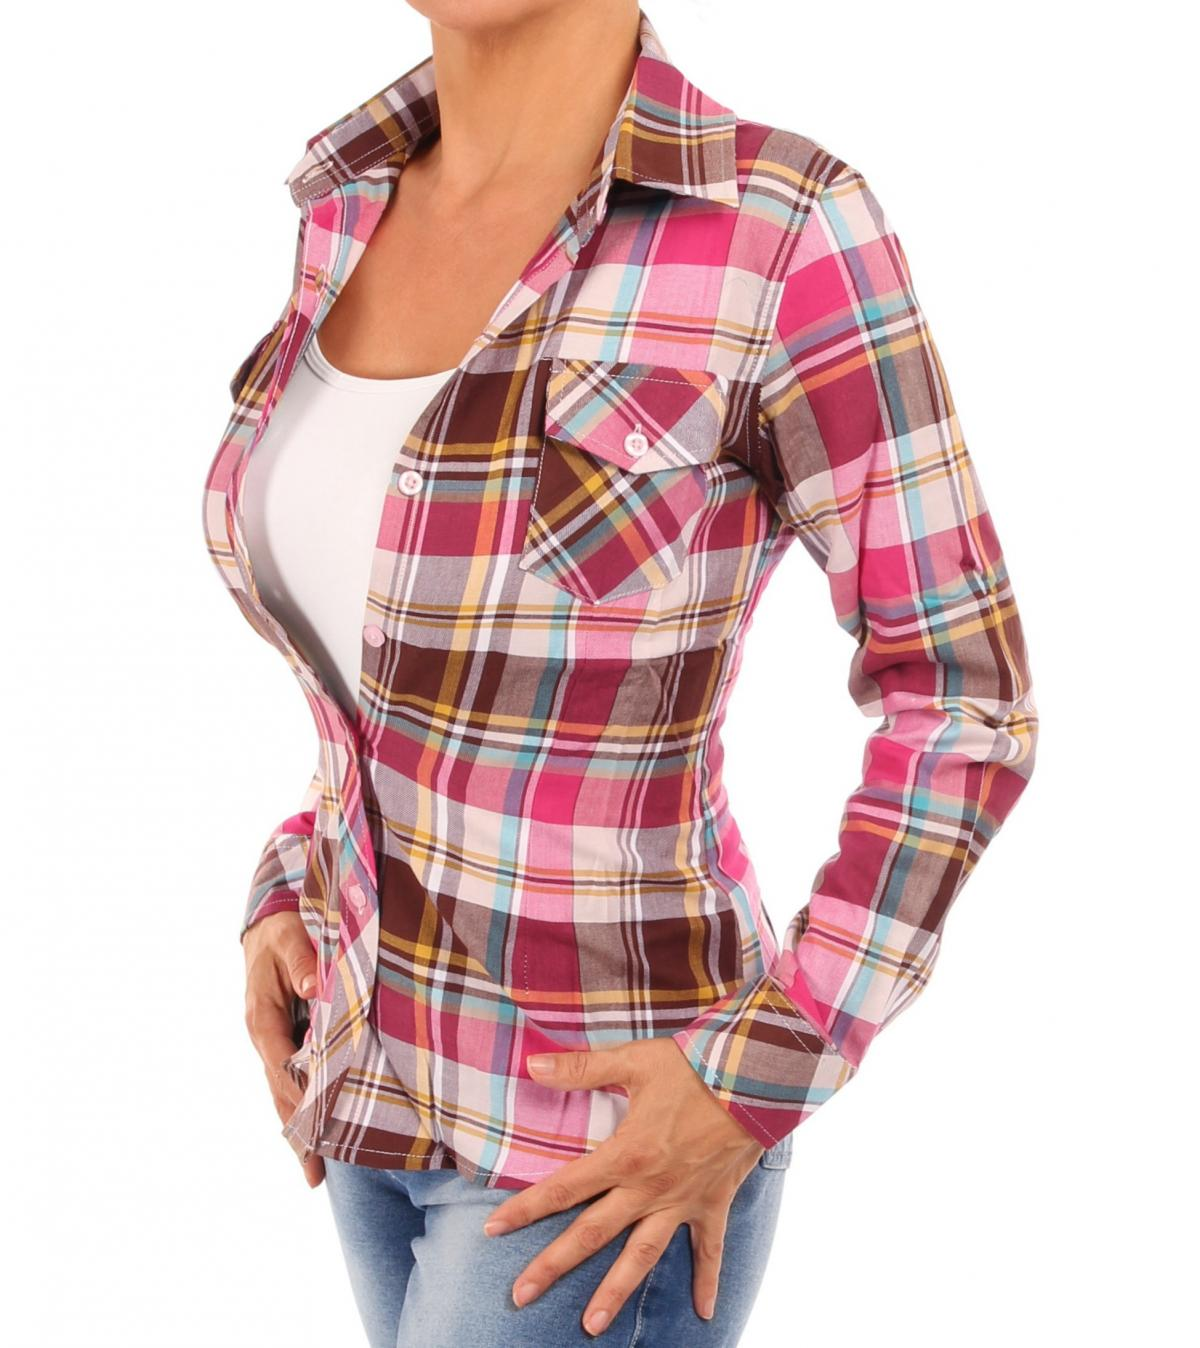 Pink and Brown Checked Shirt